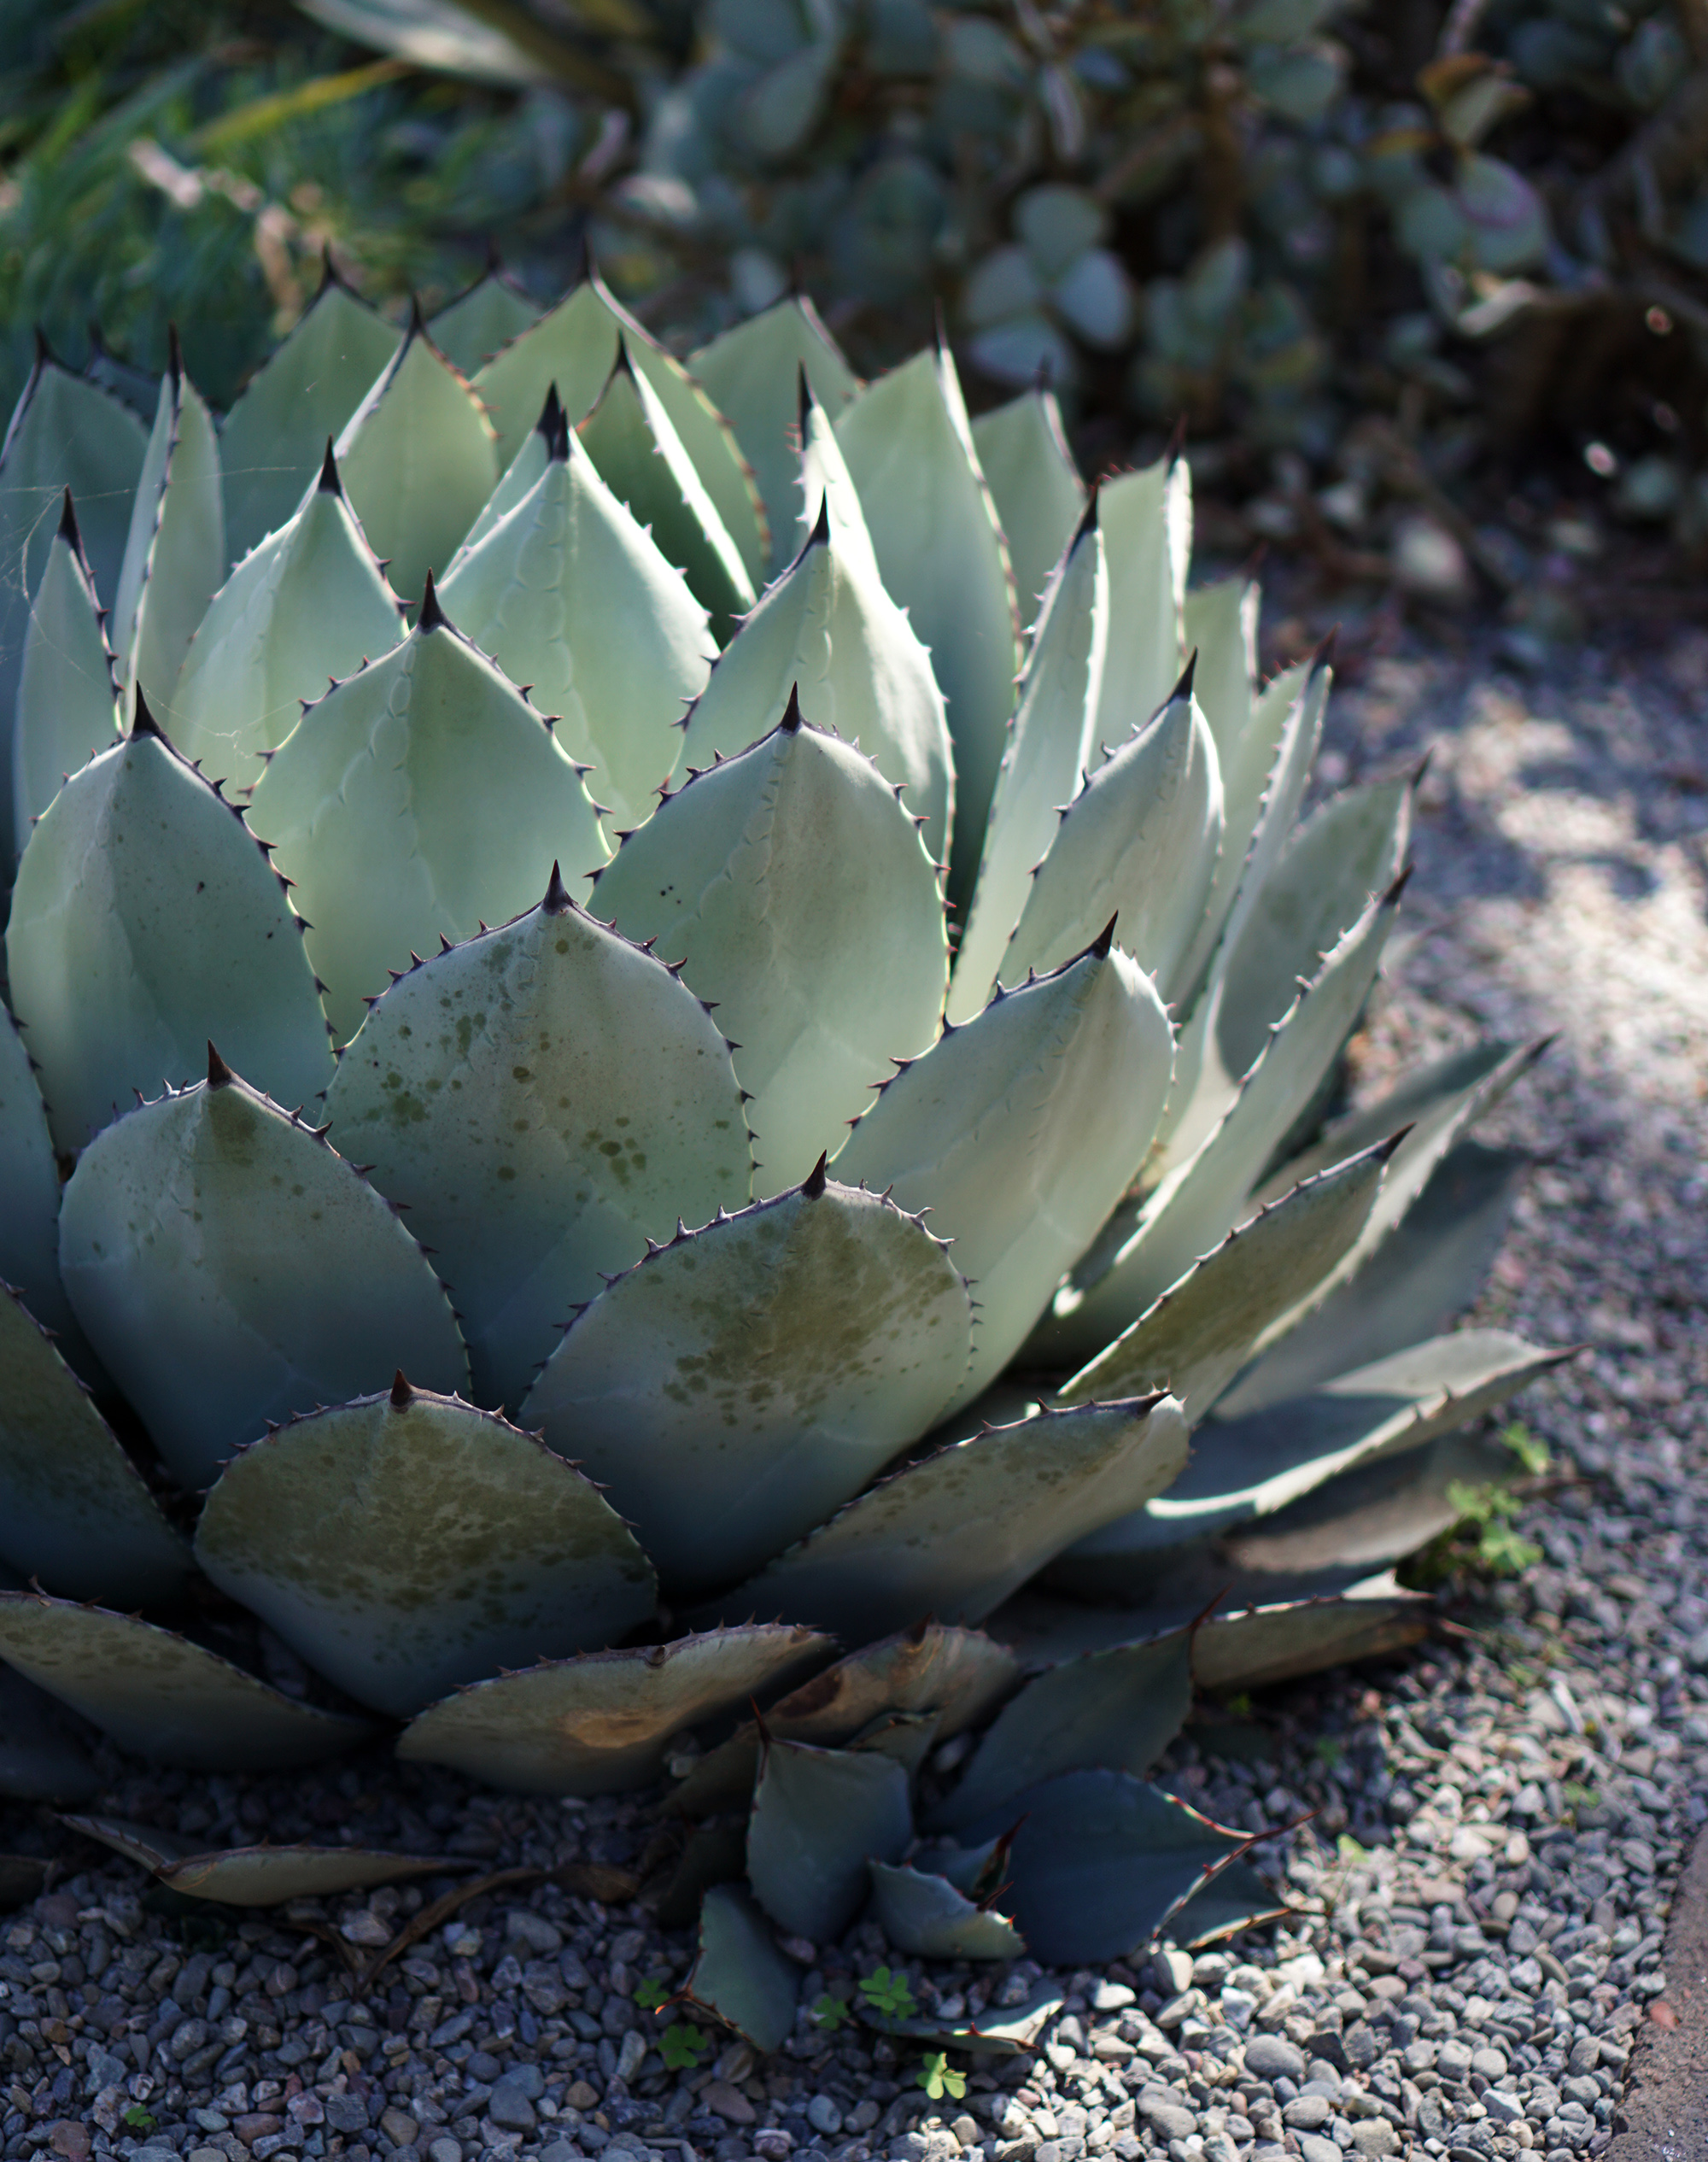 Agave at the Gardens at Lake Merritt, Oakland California / Darker than Green